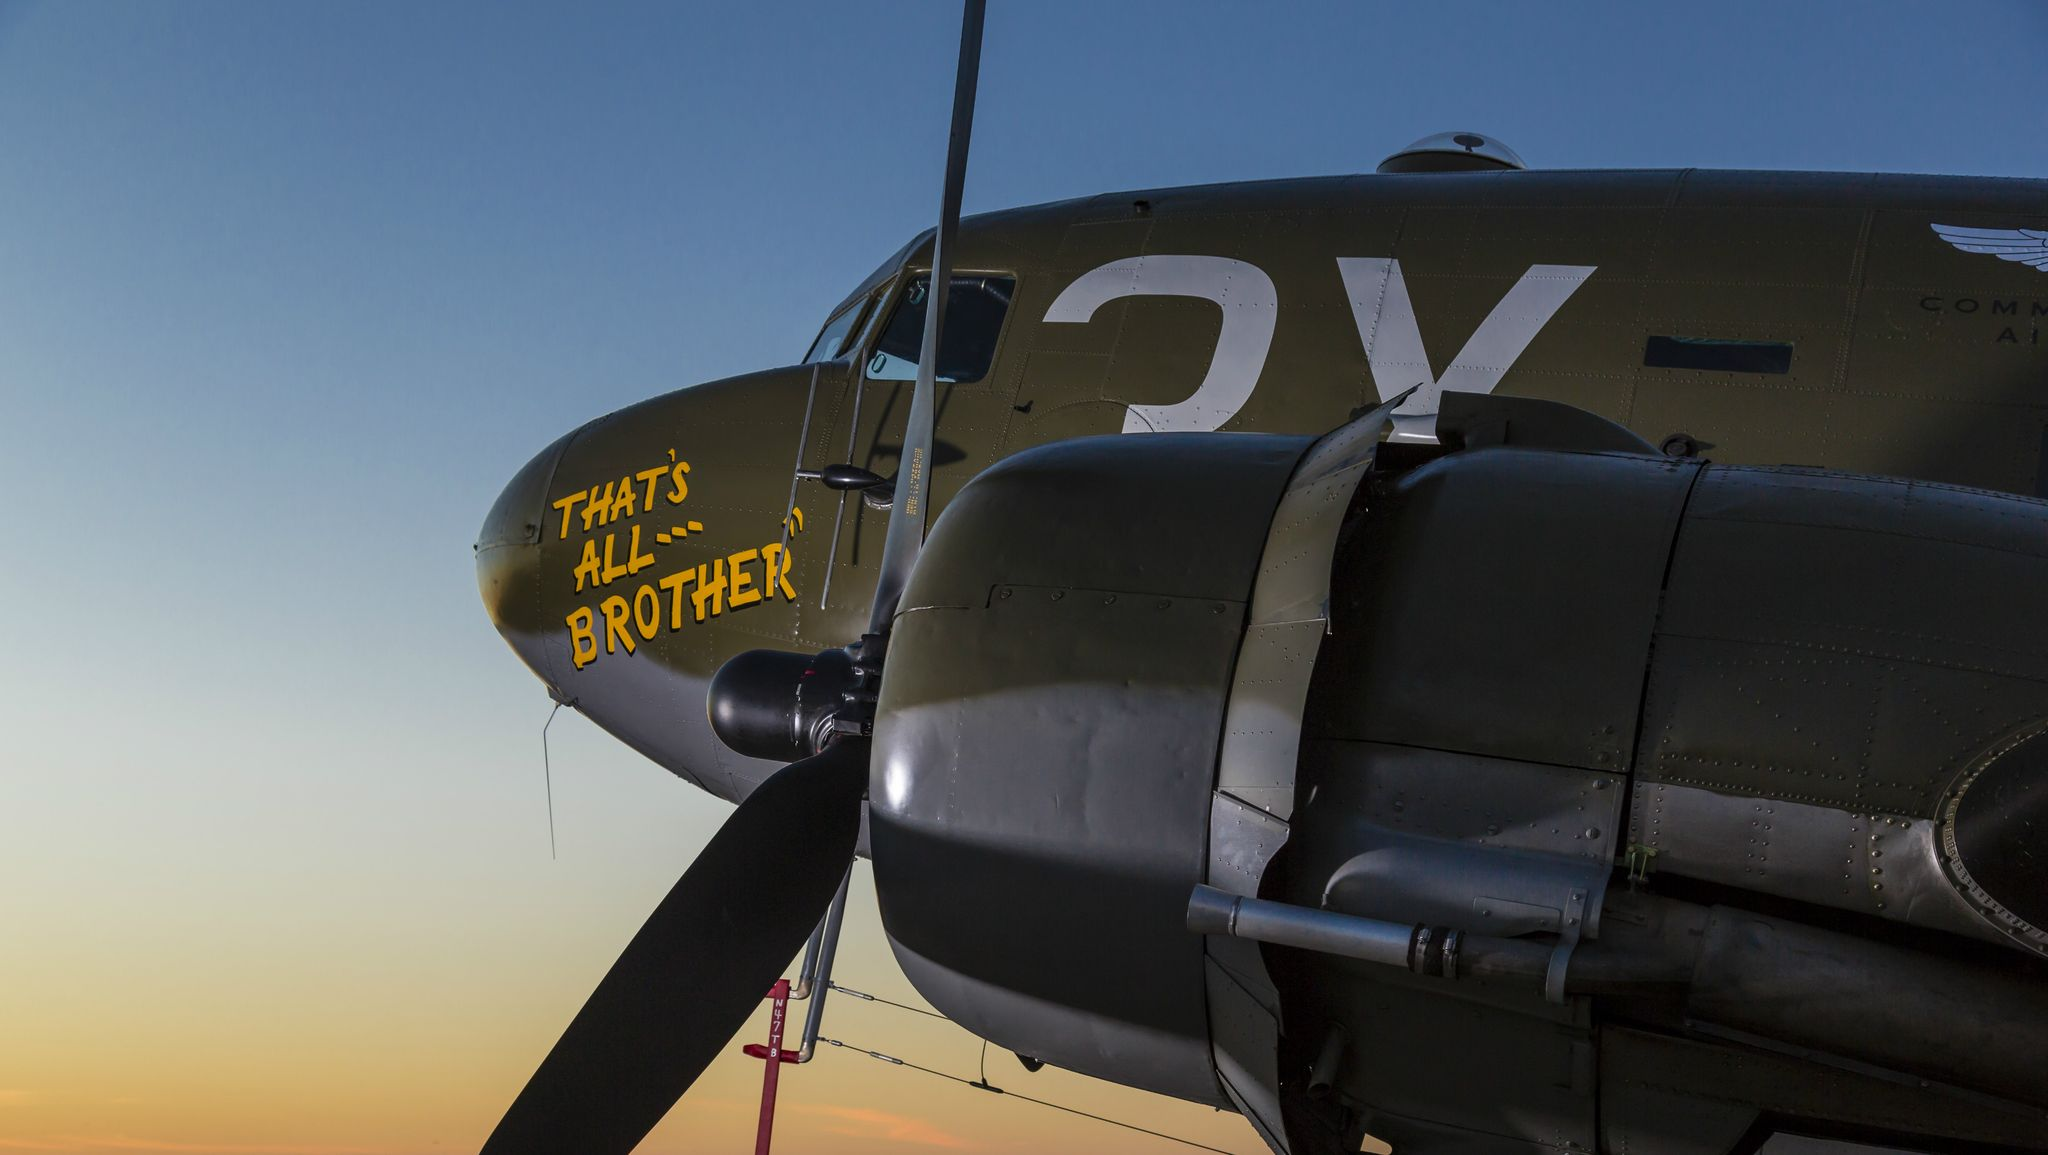 The Return of 'That's All, Brother': The Plane That Lead the D-Day Invasion